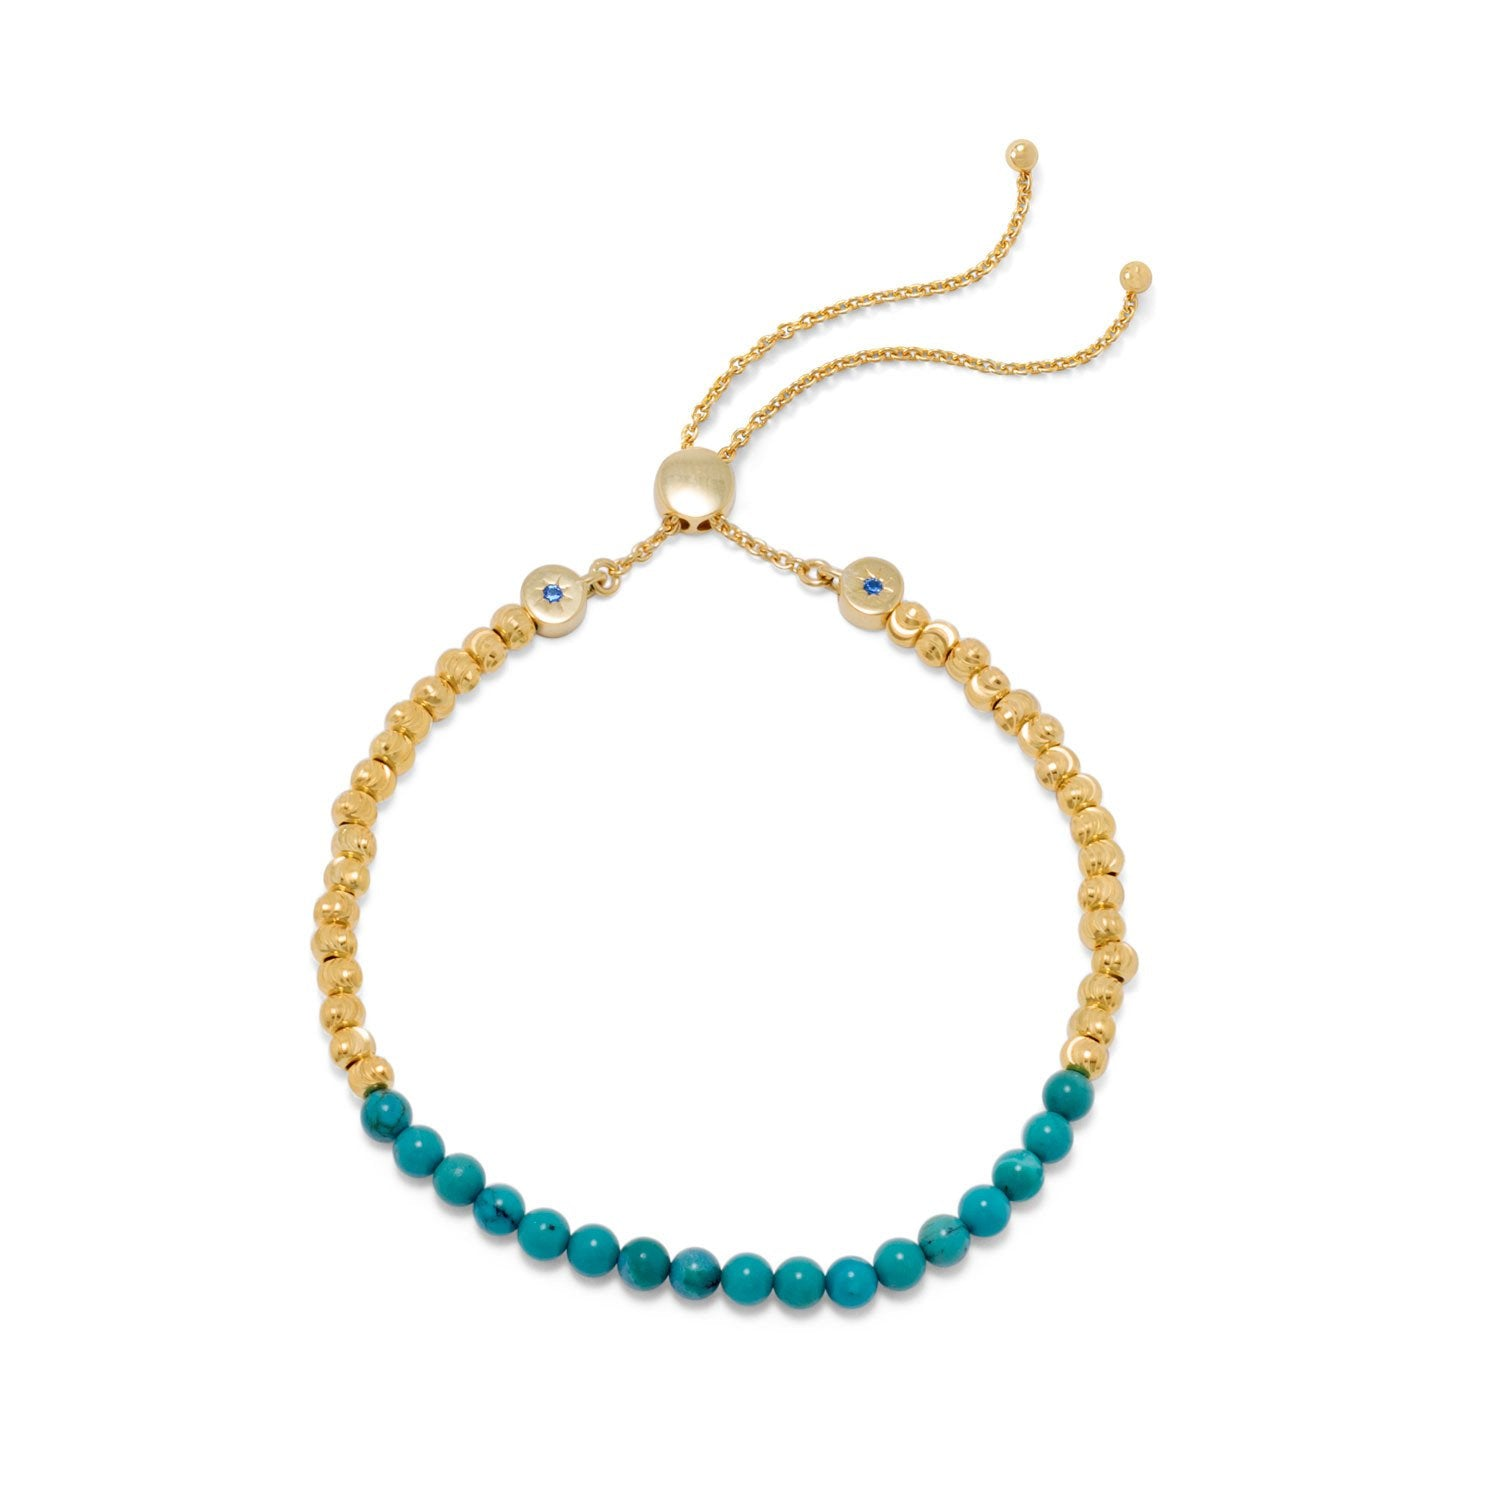 18 Karat Gold Plated Reconstituted Turquoise Bolo Bracelet - Rocky Mt. Discount Outlet